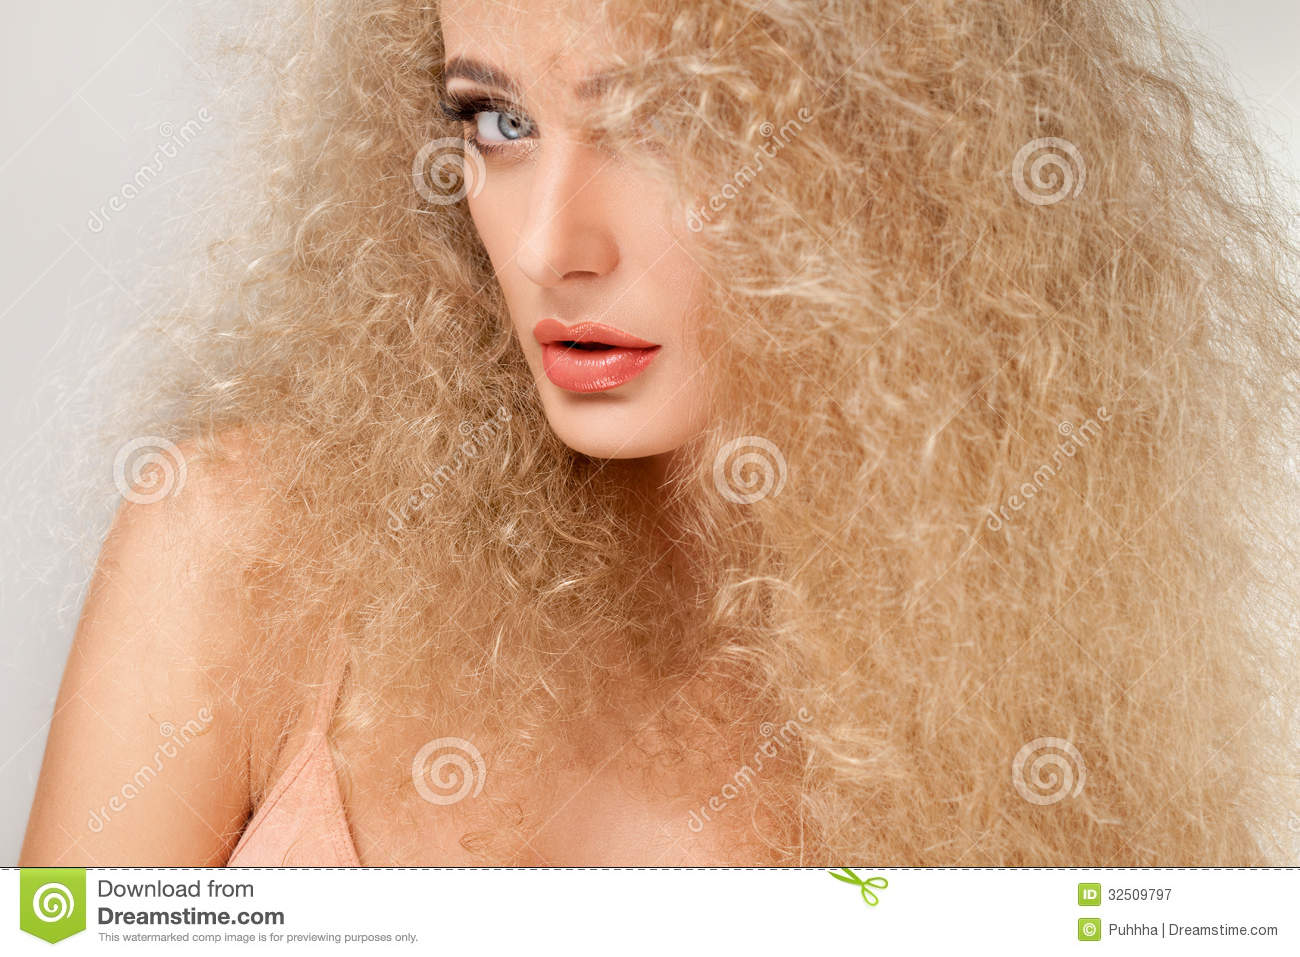 how to keep blonde curly hair healthy